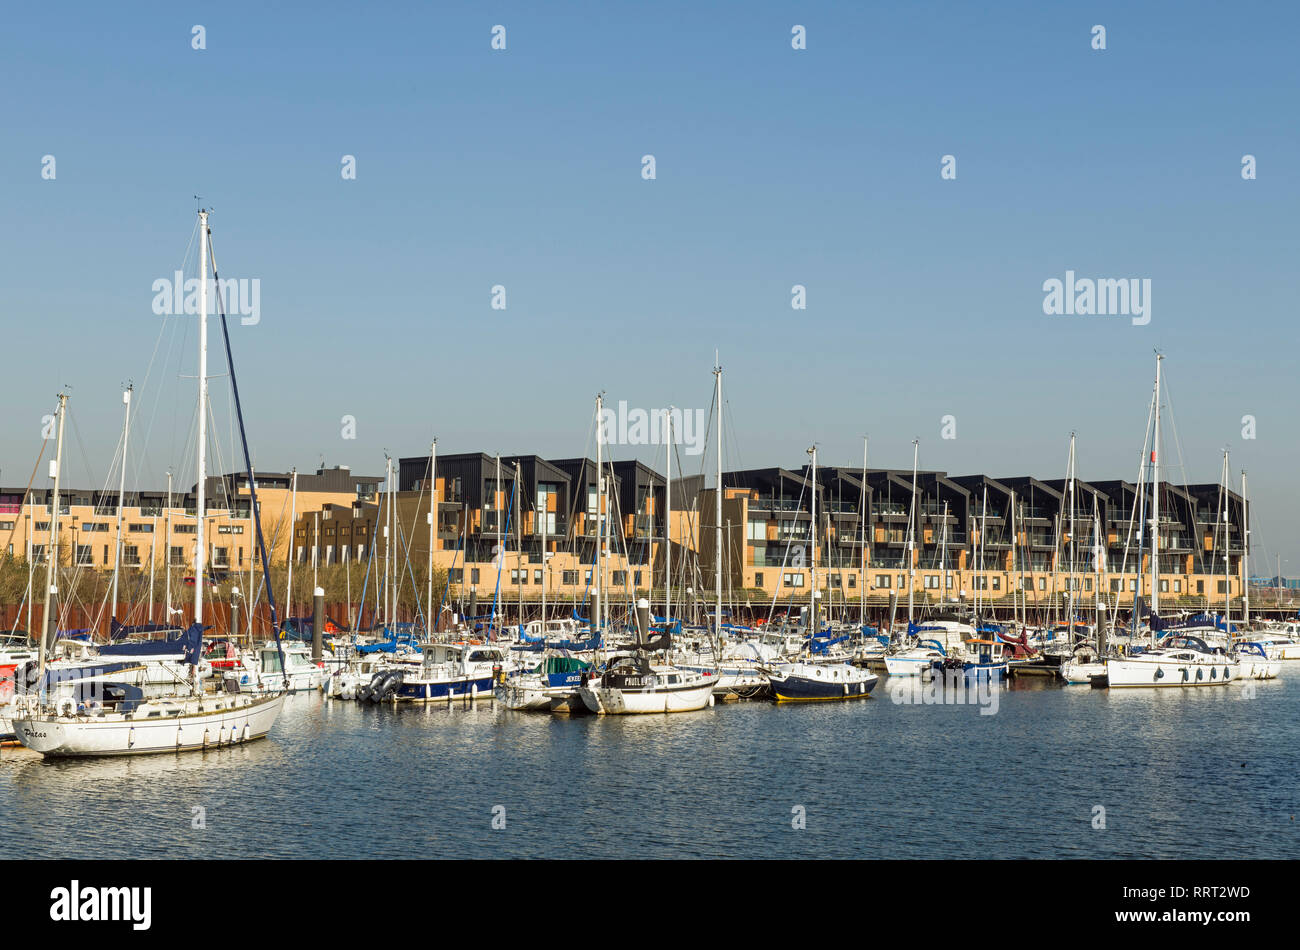 The Marina on the River Ely at Cardiff Bay, South Wales on a bright and sunny February afternoon Stock Photo